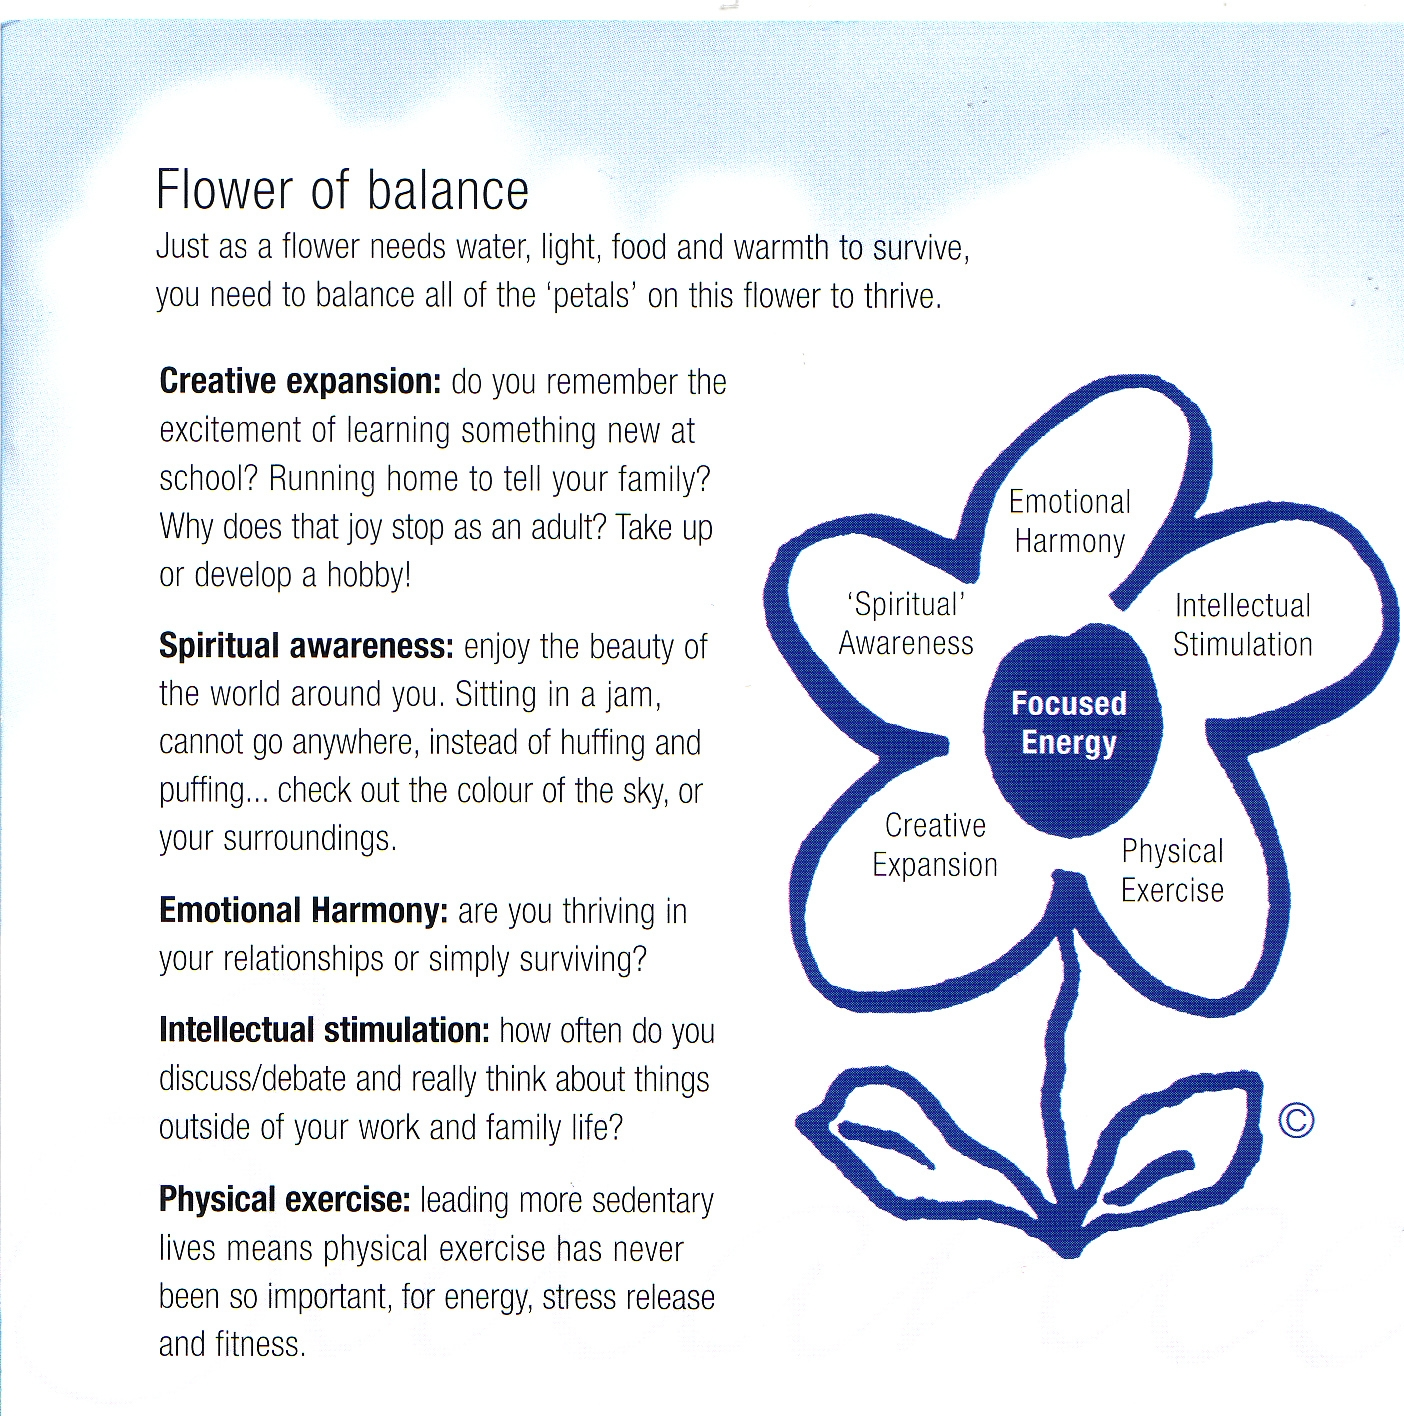 Penny Anne O'Donnell's Flower of Balance